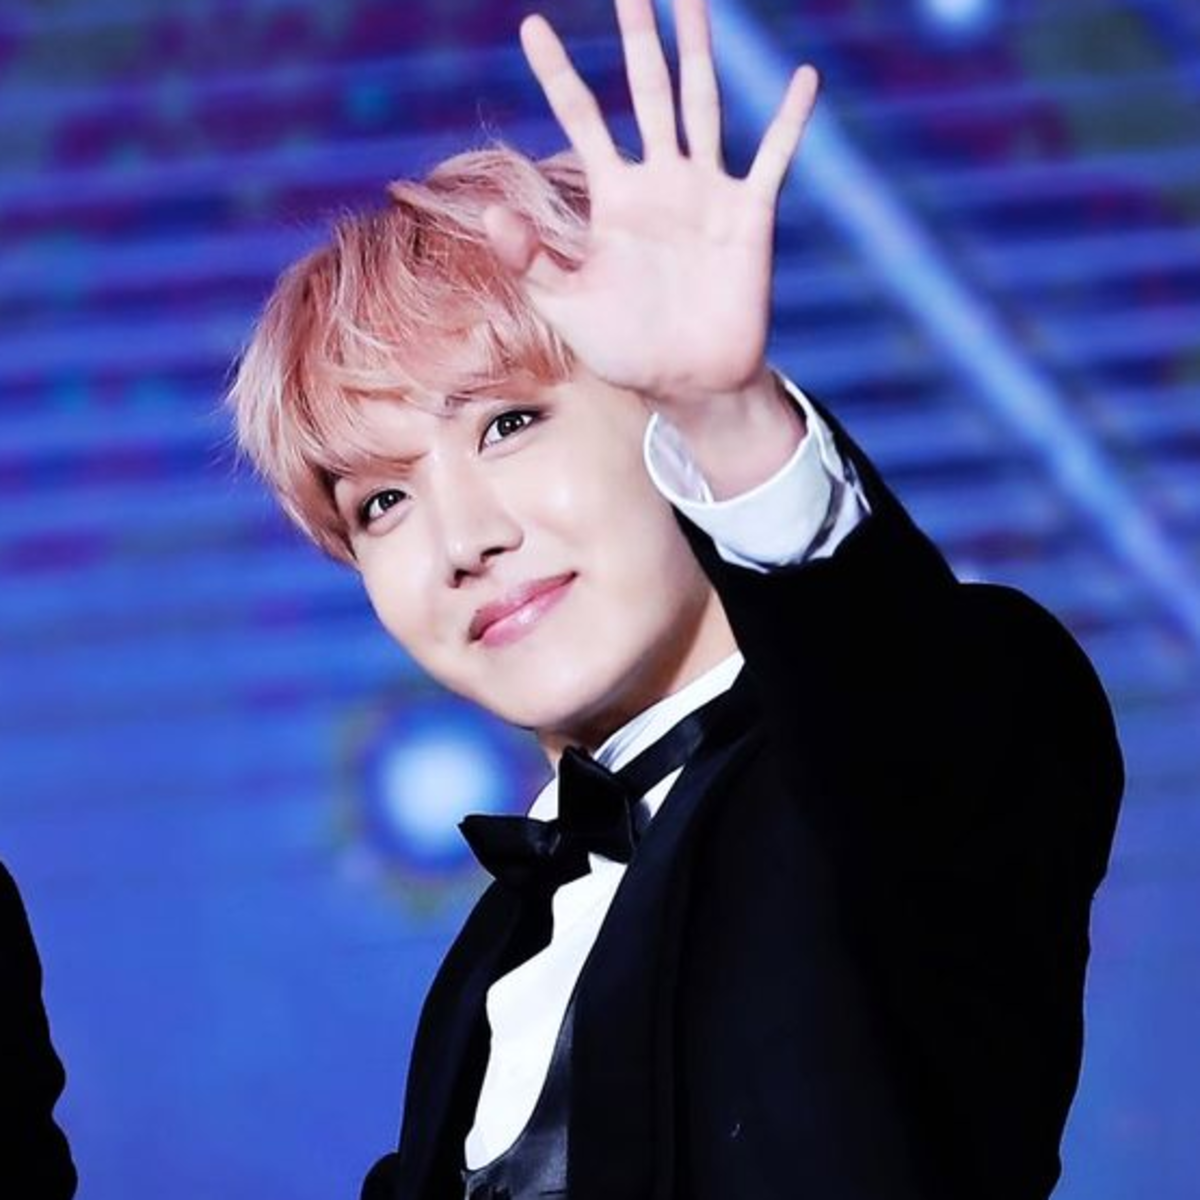 10 Reasons Why J-hope is the Sunshine of BTS